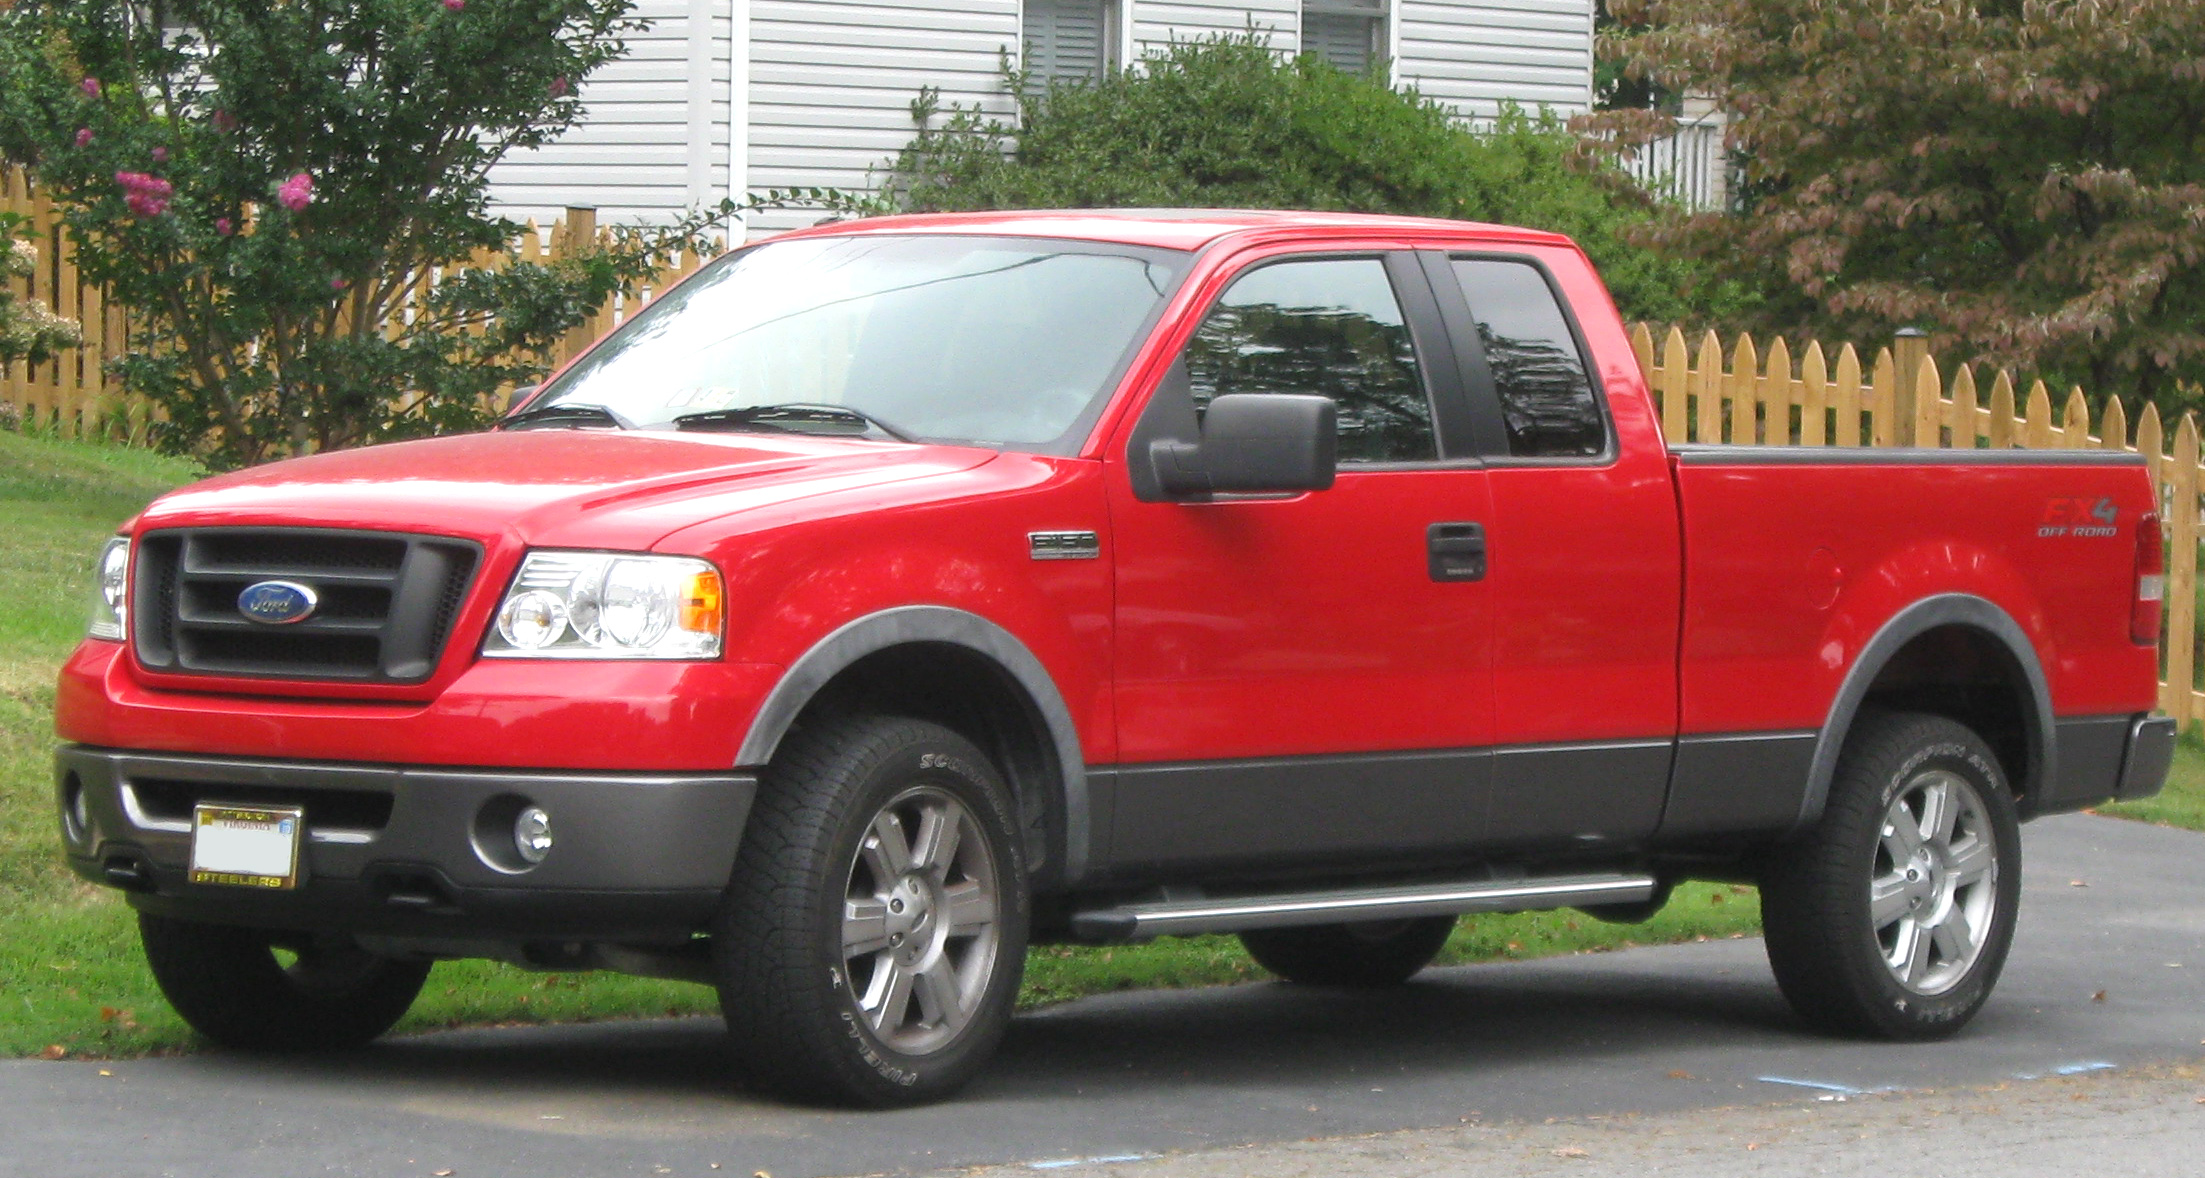 2009 ford f 150 image 1. Black Bedroom Furniture Sets. Home Design Ideas